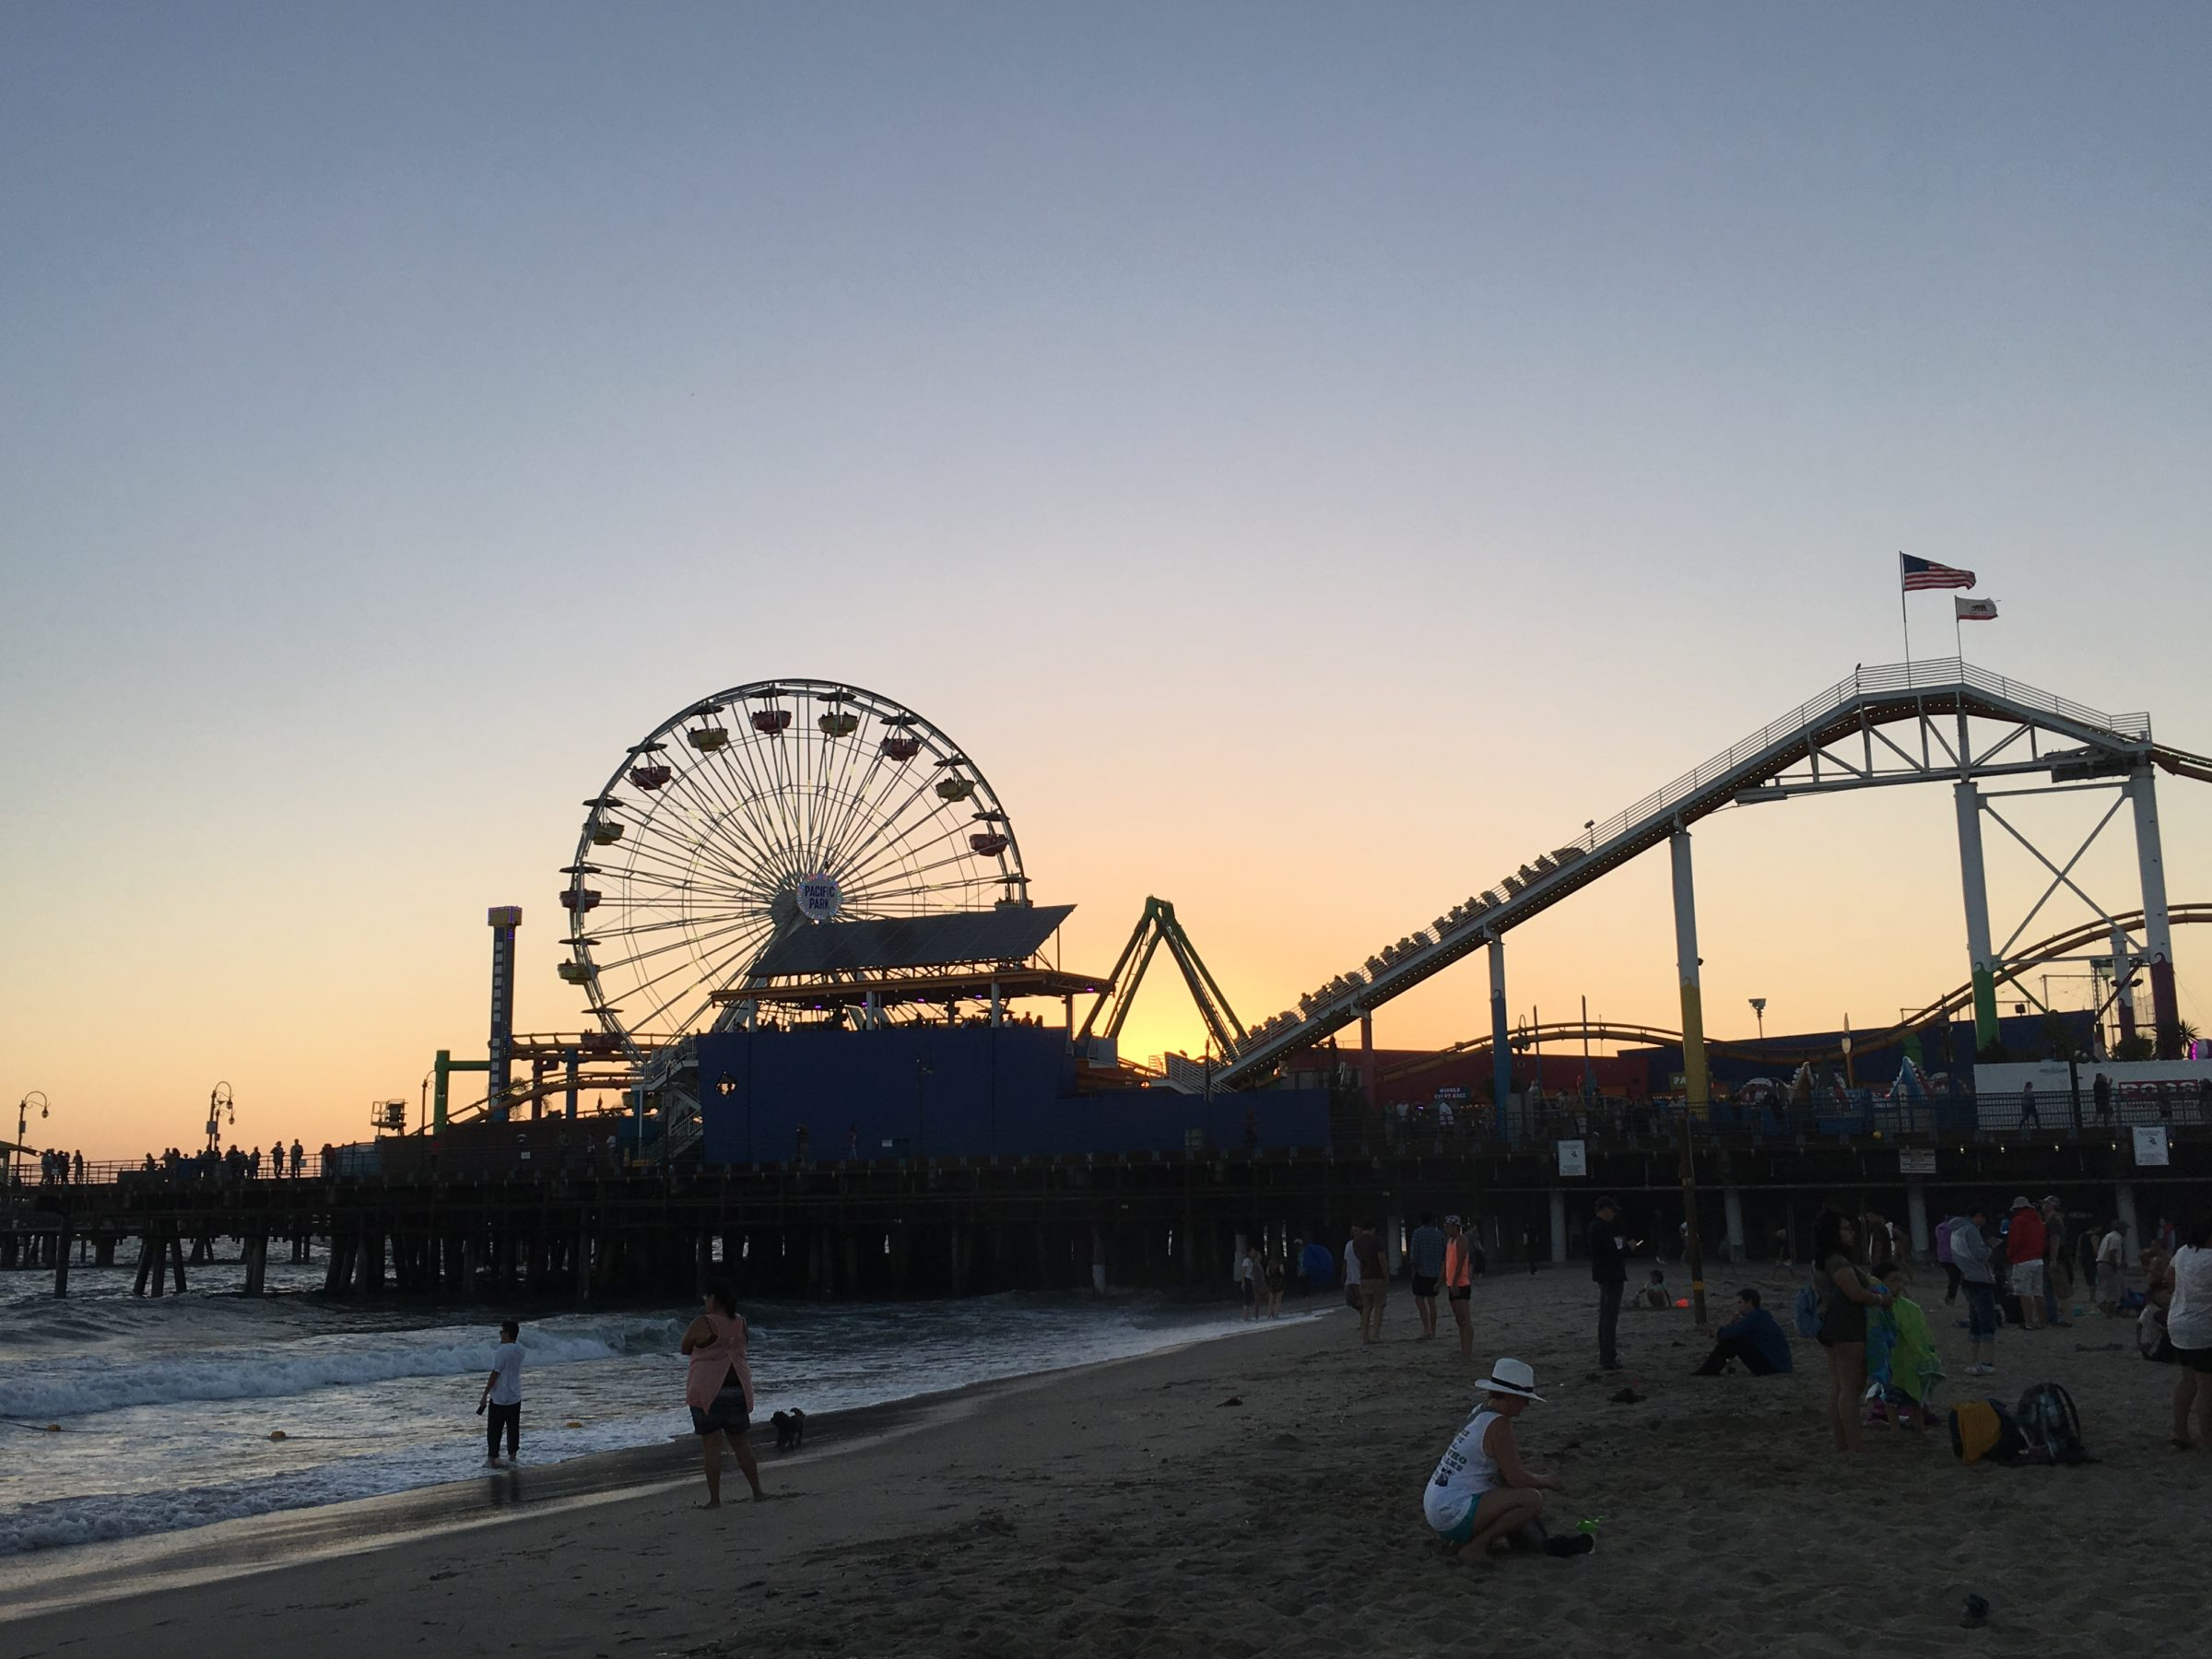 The Santa Monica pier and the surrounding beach is one of the amazing free things you can do with family in the Los Angeles Area. #losangeles #santamonica #familytravel #santmonicapier #sunset